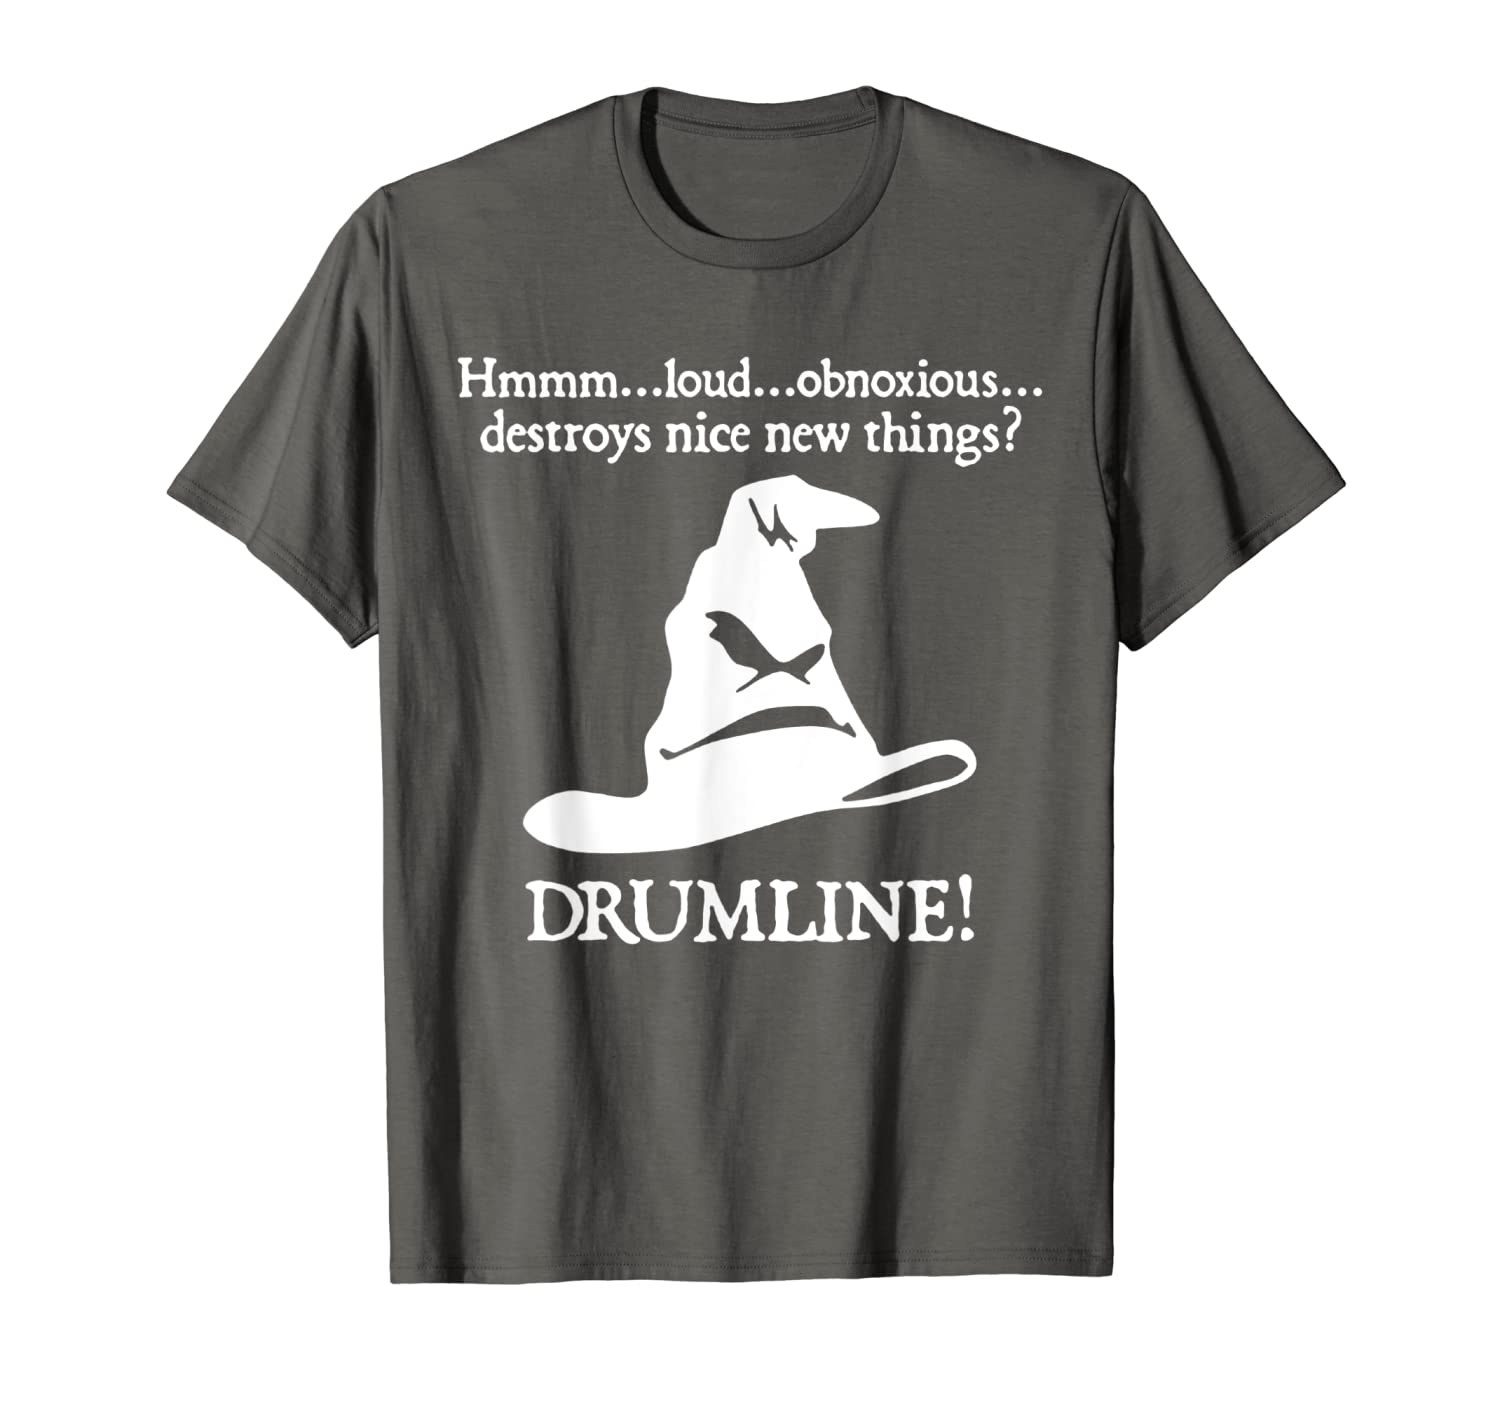 Amazon com: The Sorting Hat Selects The Drum line T-Shirt: Clothing